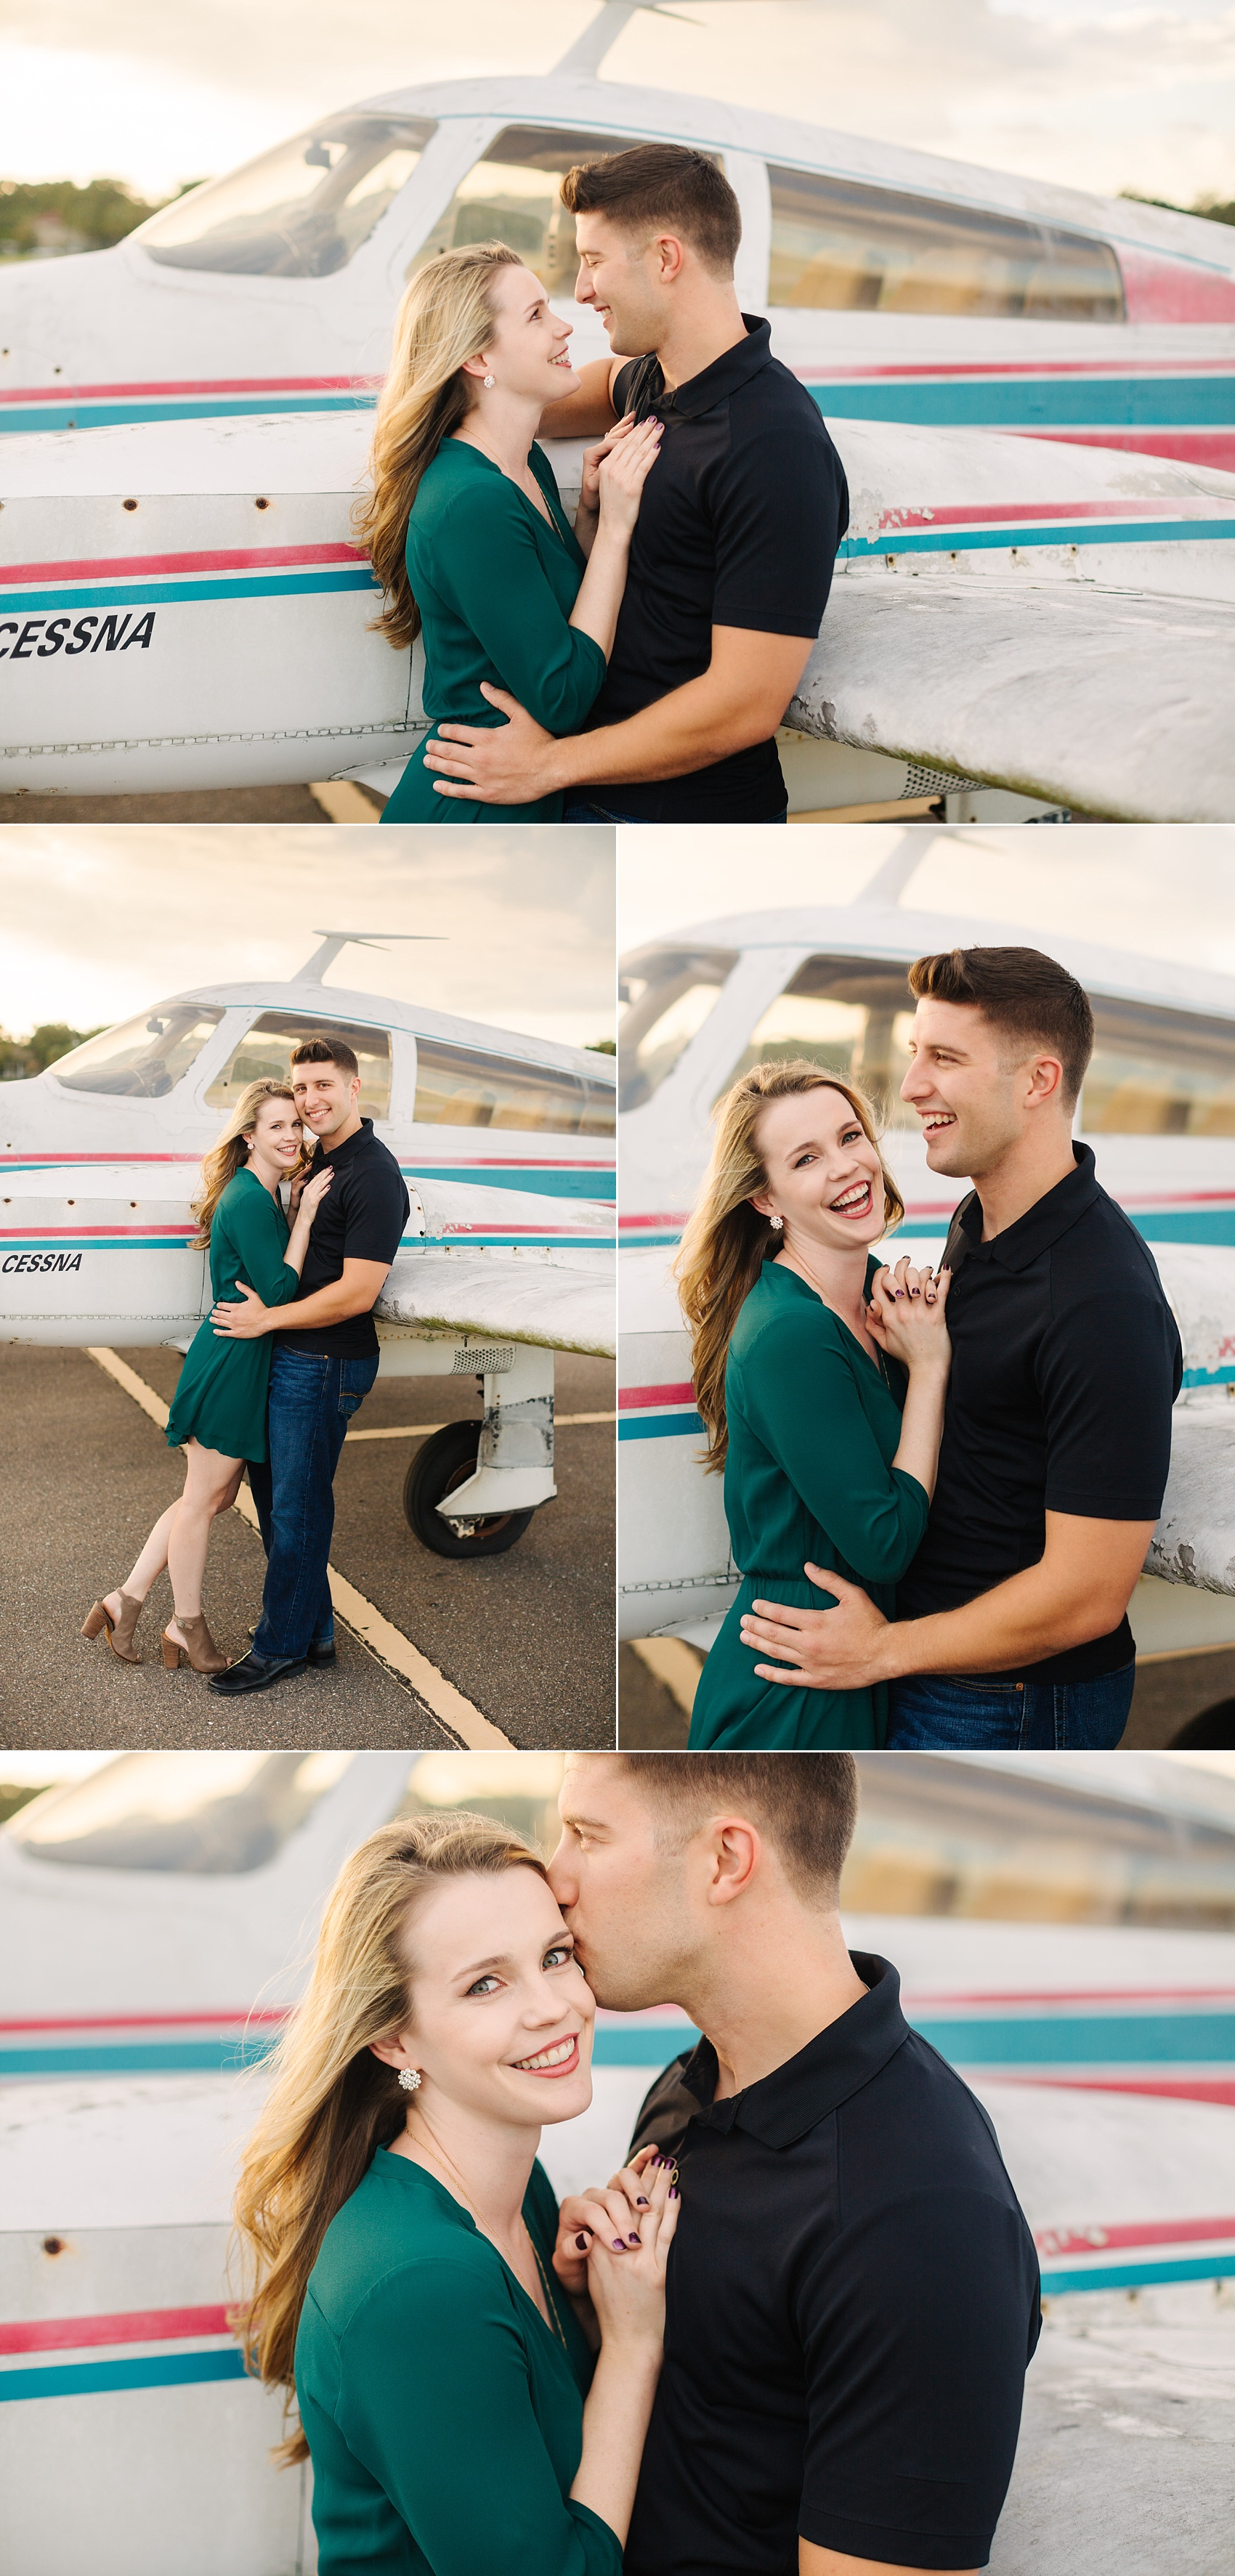 tampa airport engagement session-2.jpg